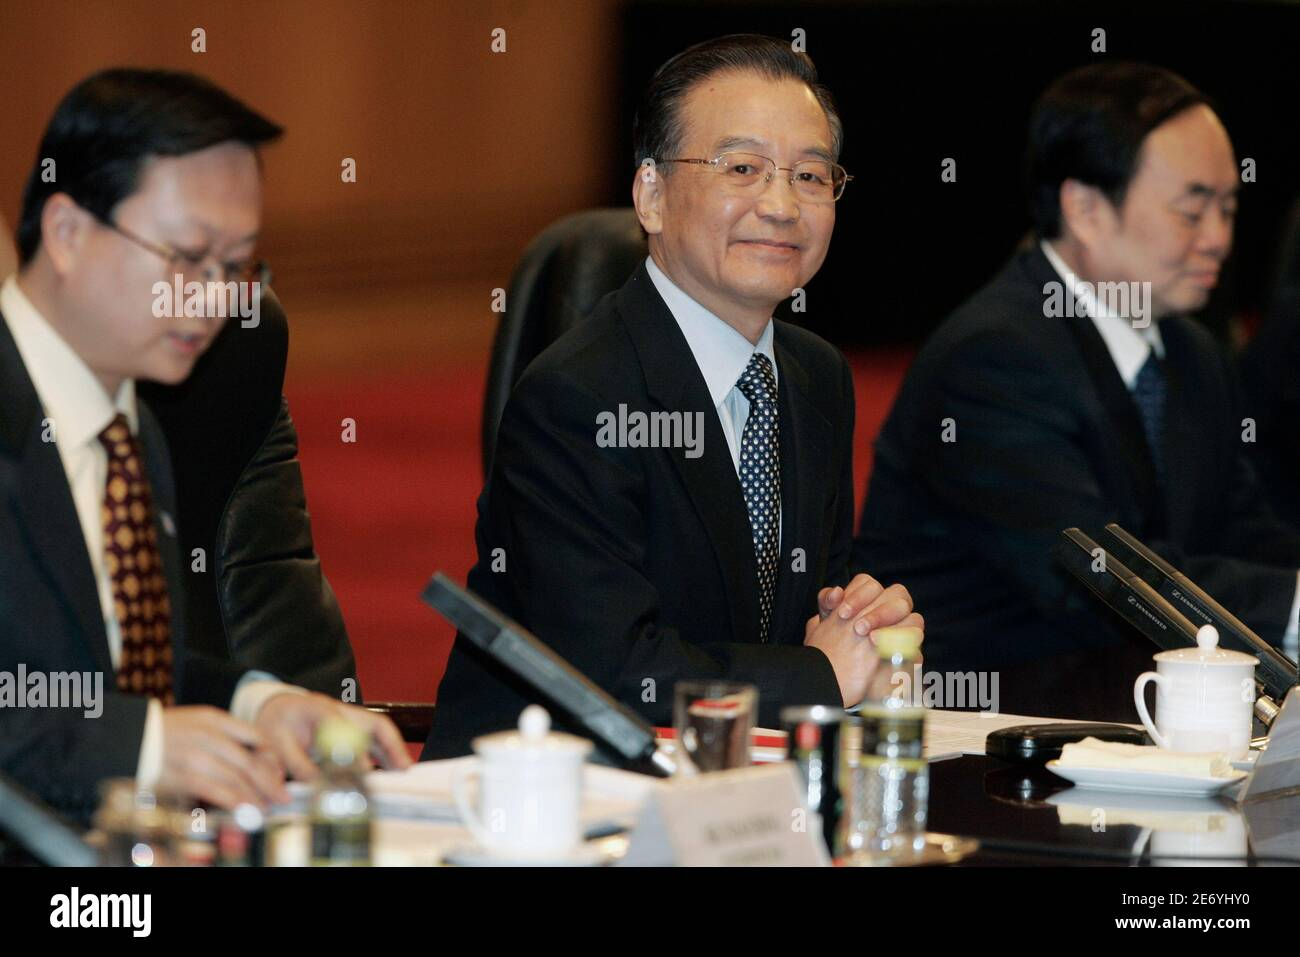 China's Premier Wen Jiabao (C) sits with unidentified Chinese officials during talks with Portugal's Prime Minister Jose Socrates at the Great Hall of the People in Beijing, January 31, 2007.    REUTERS/Michael Reynolds/Pool  (CHINA) Stock Photo